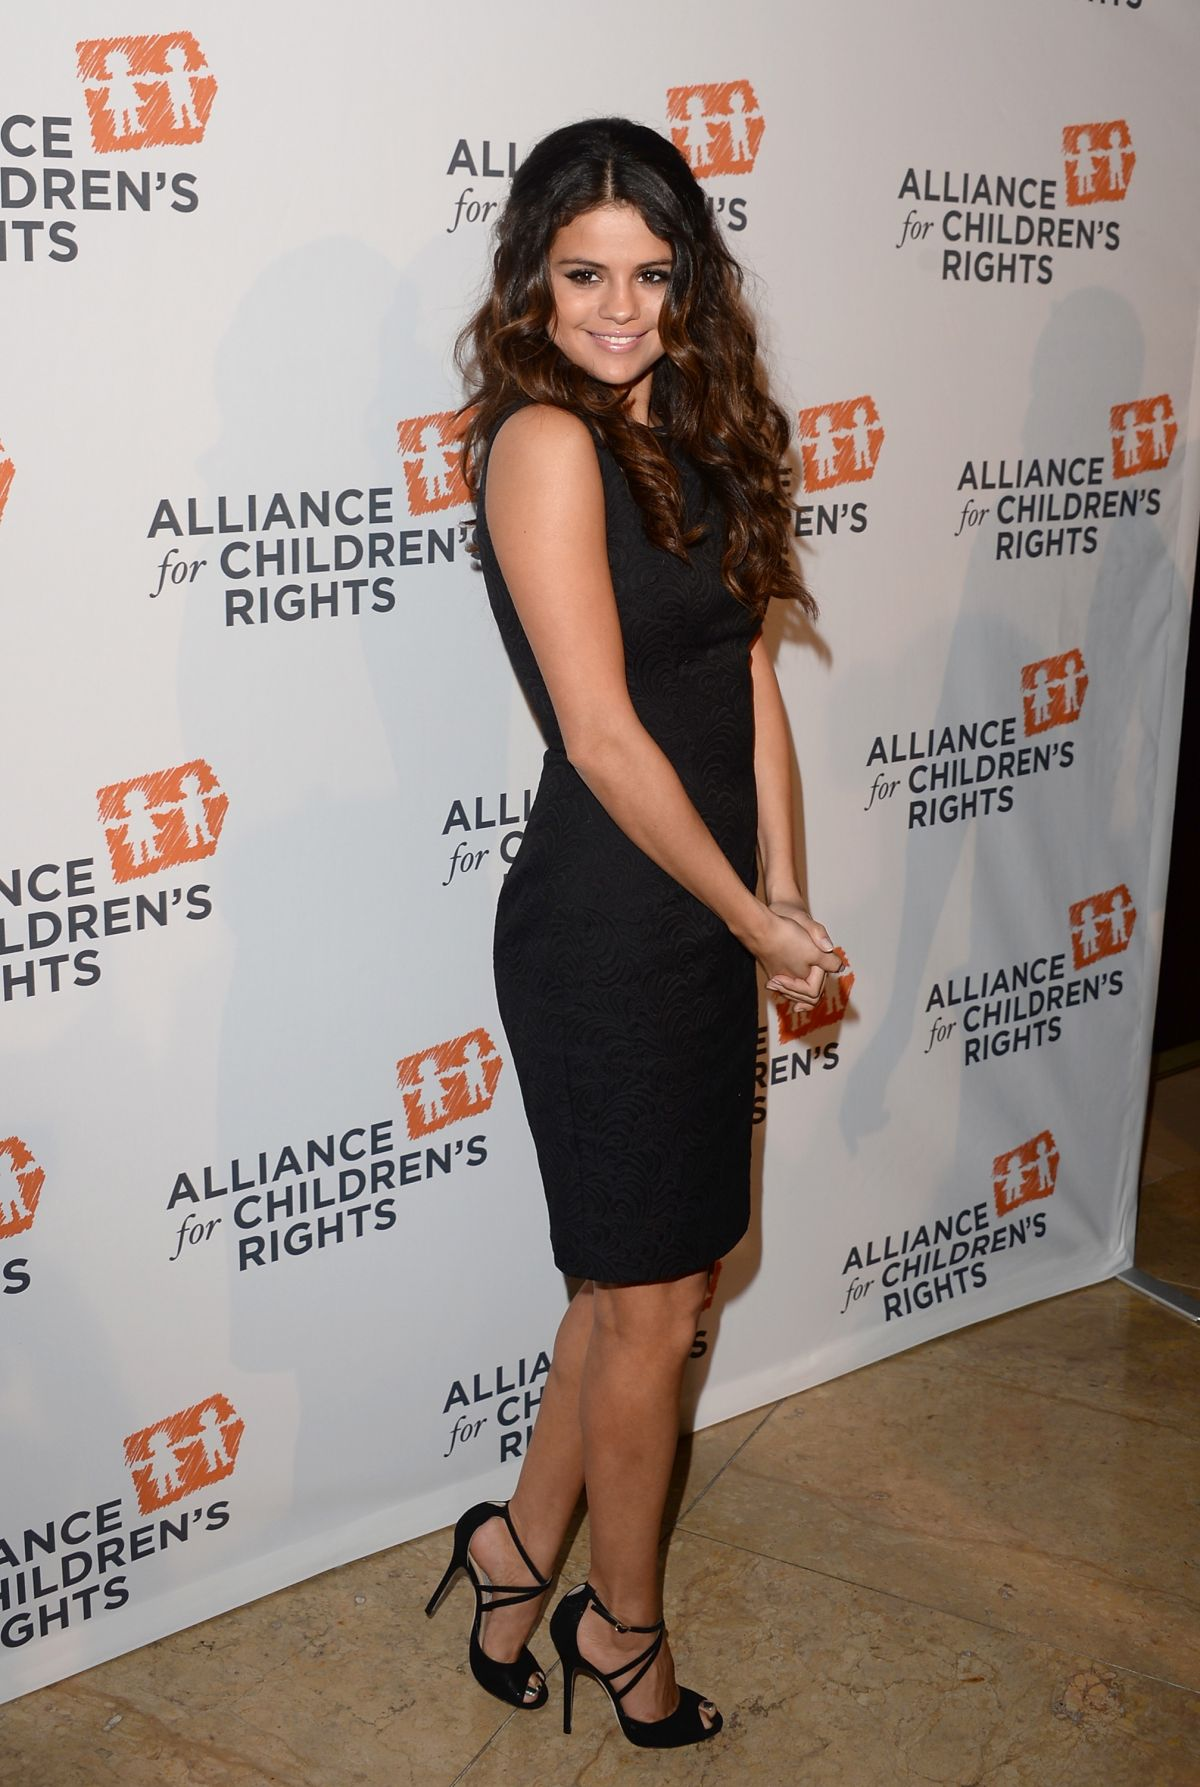 SELENA GOMEZ at the Alliance for Children's Right Dinner